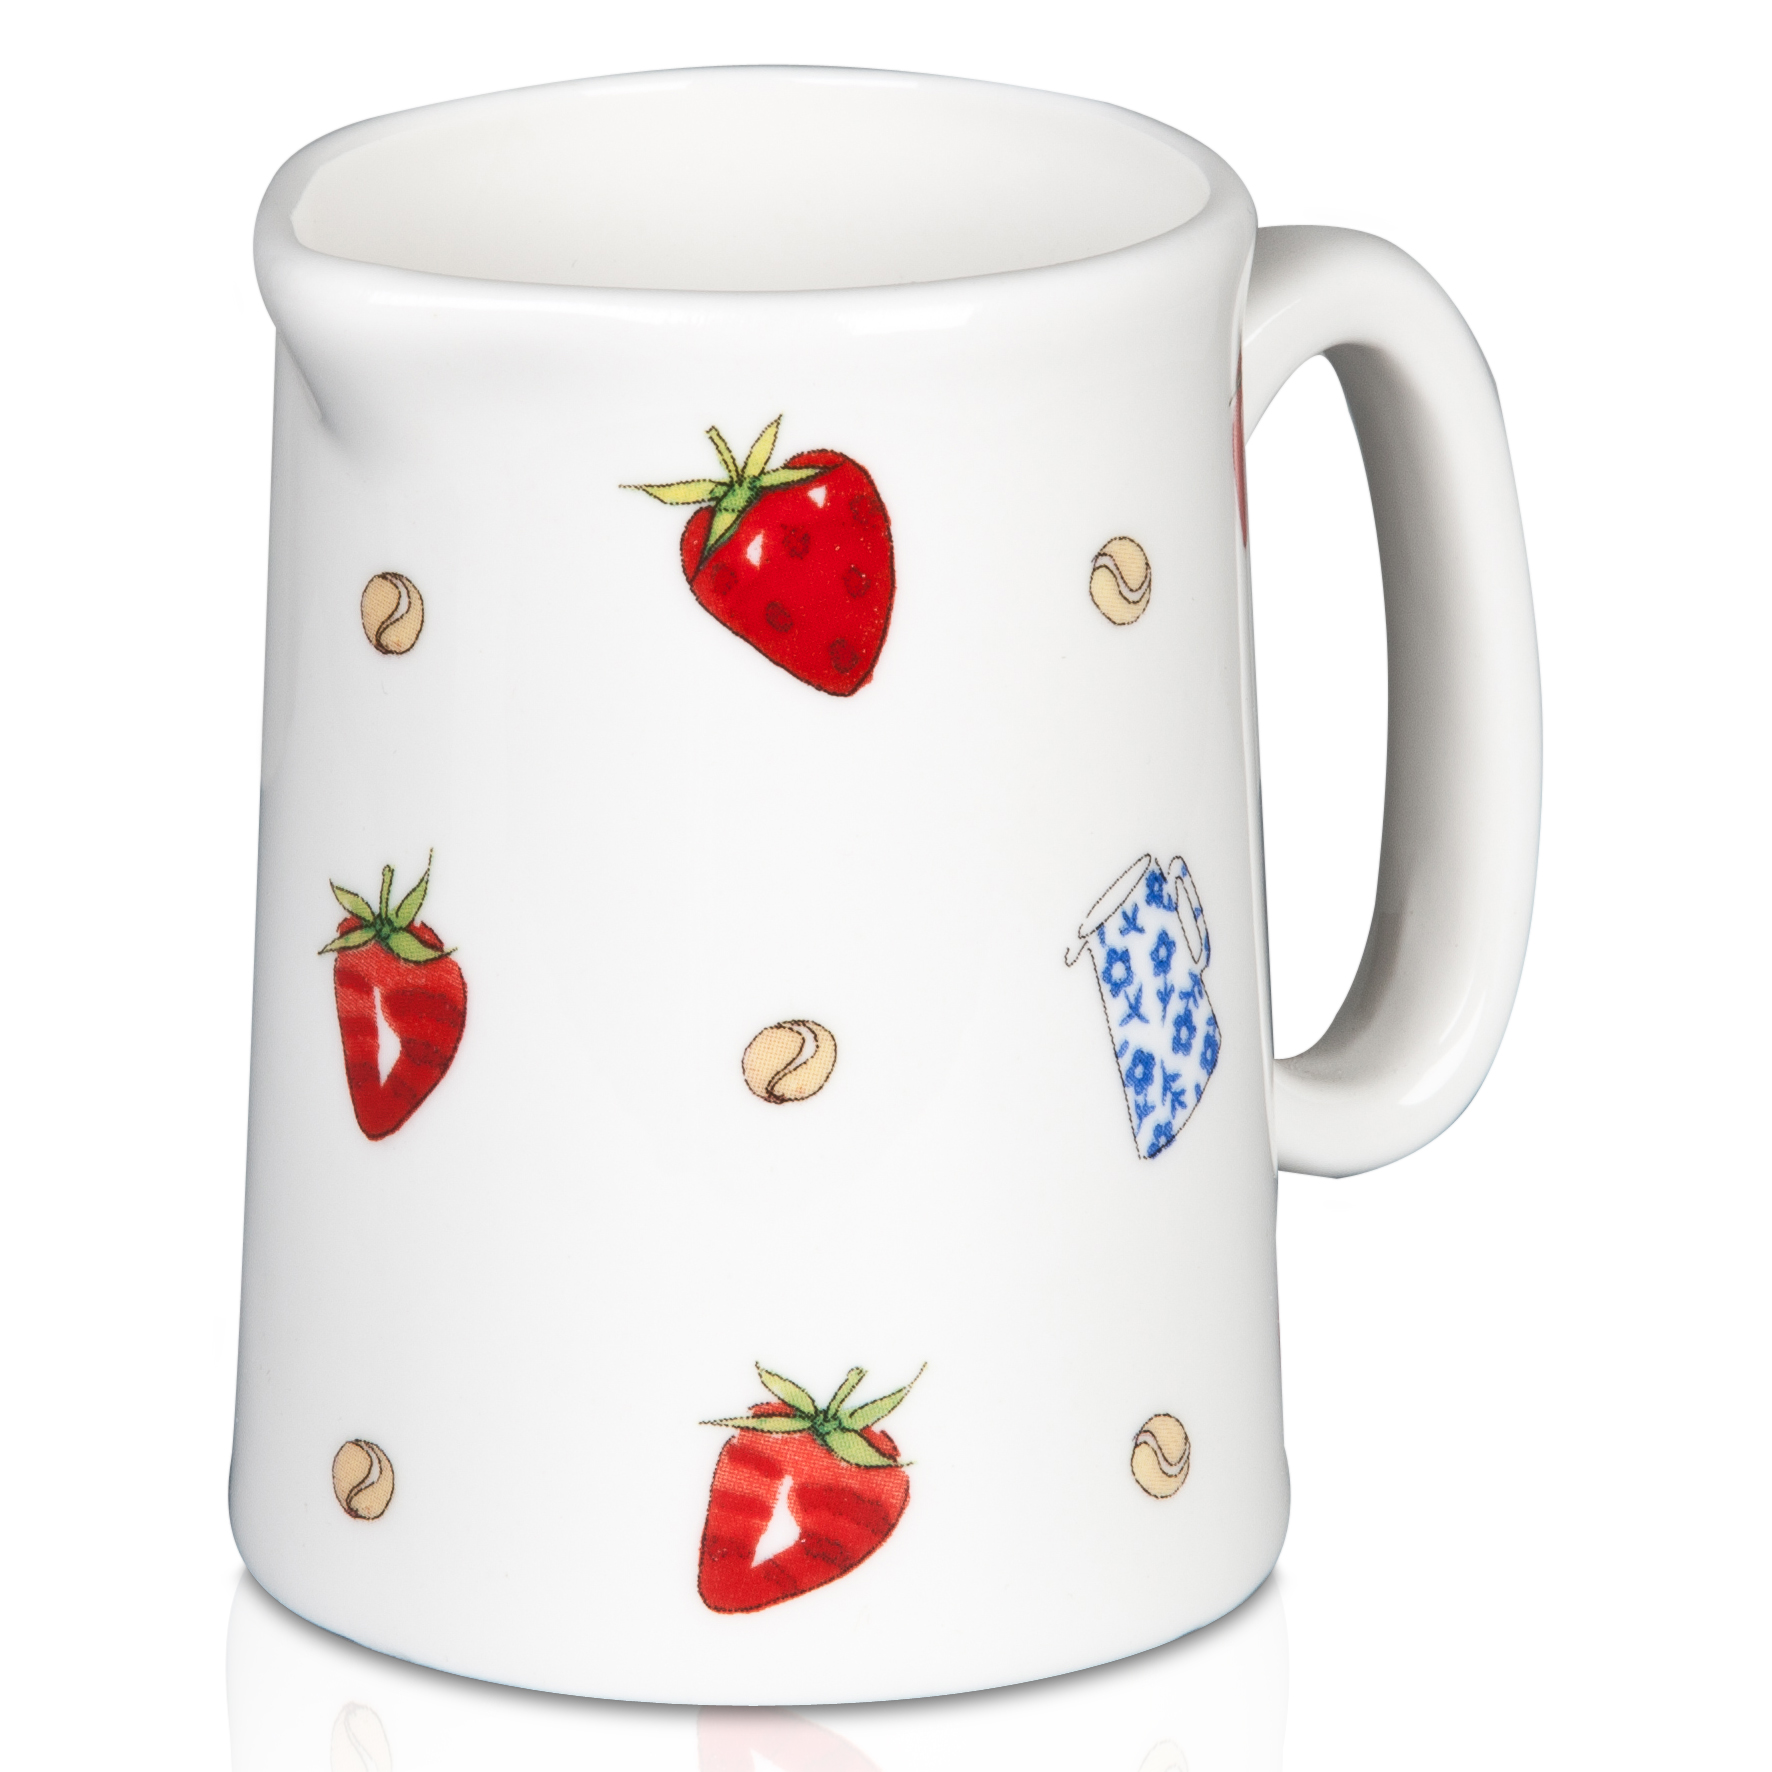 Wimbledon Strawberries and Cream Small Jug - White